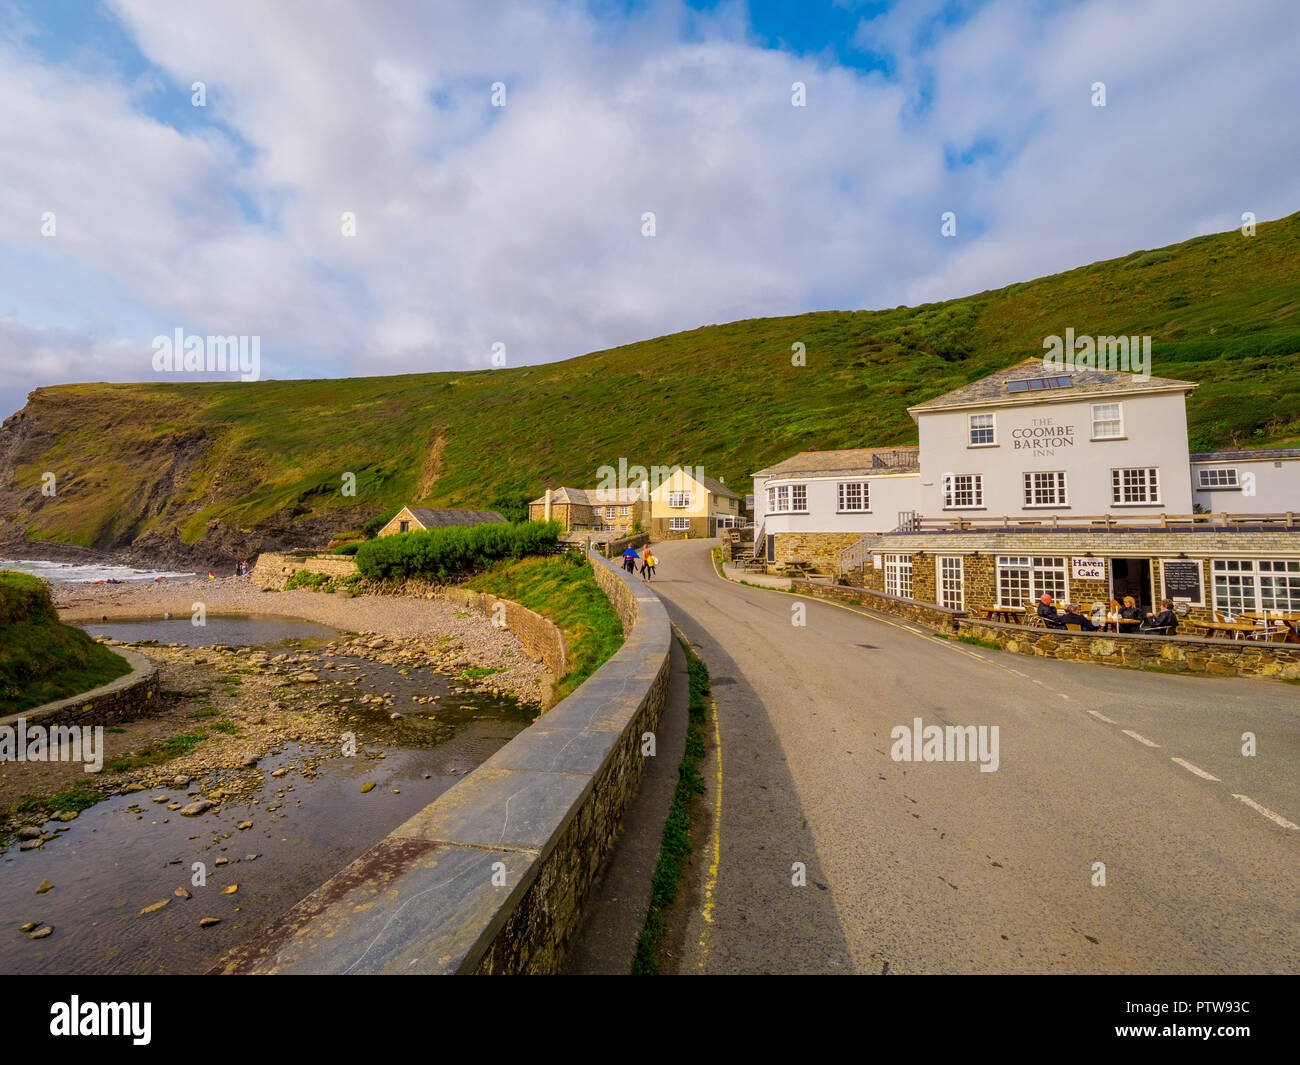 Coombe Barton Inn in Crackington Haven Cornwall - CORNWALL / ENGLAND - AUGUST 12, 2018 Stock Photo